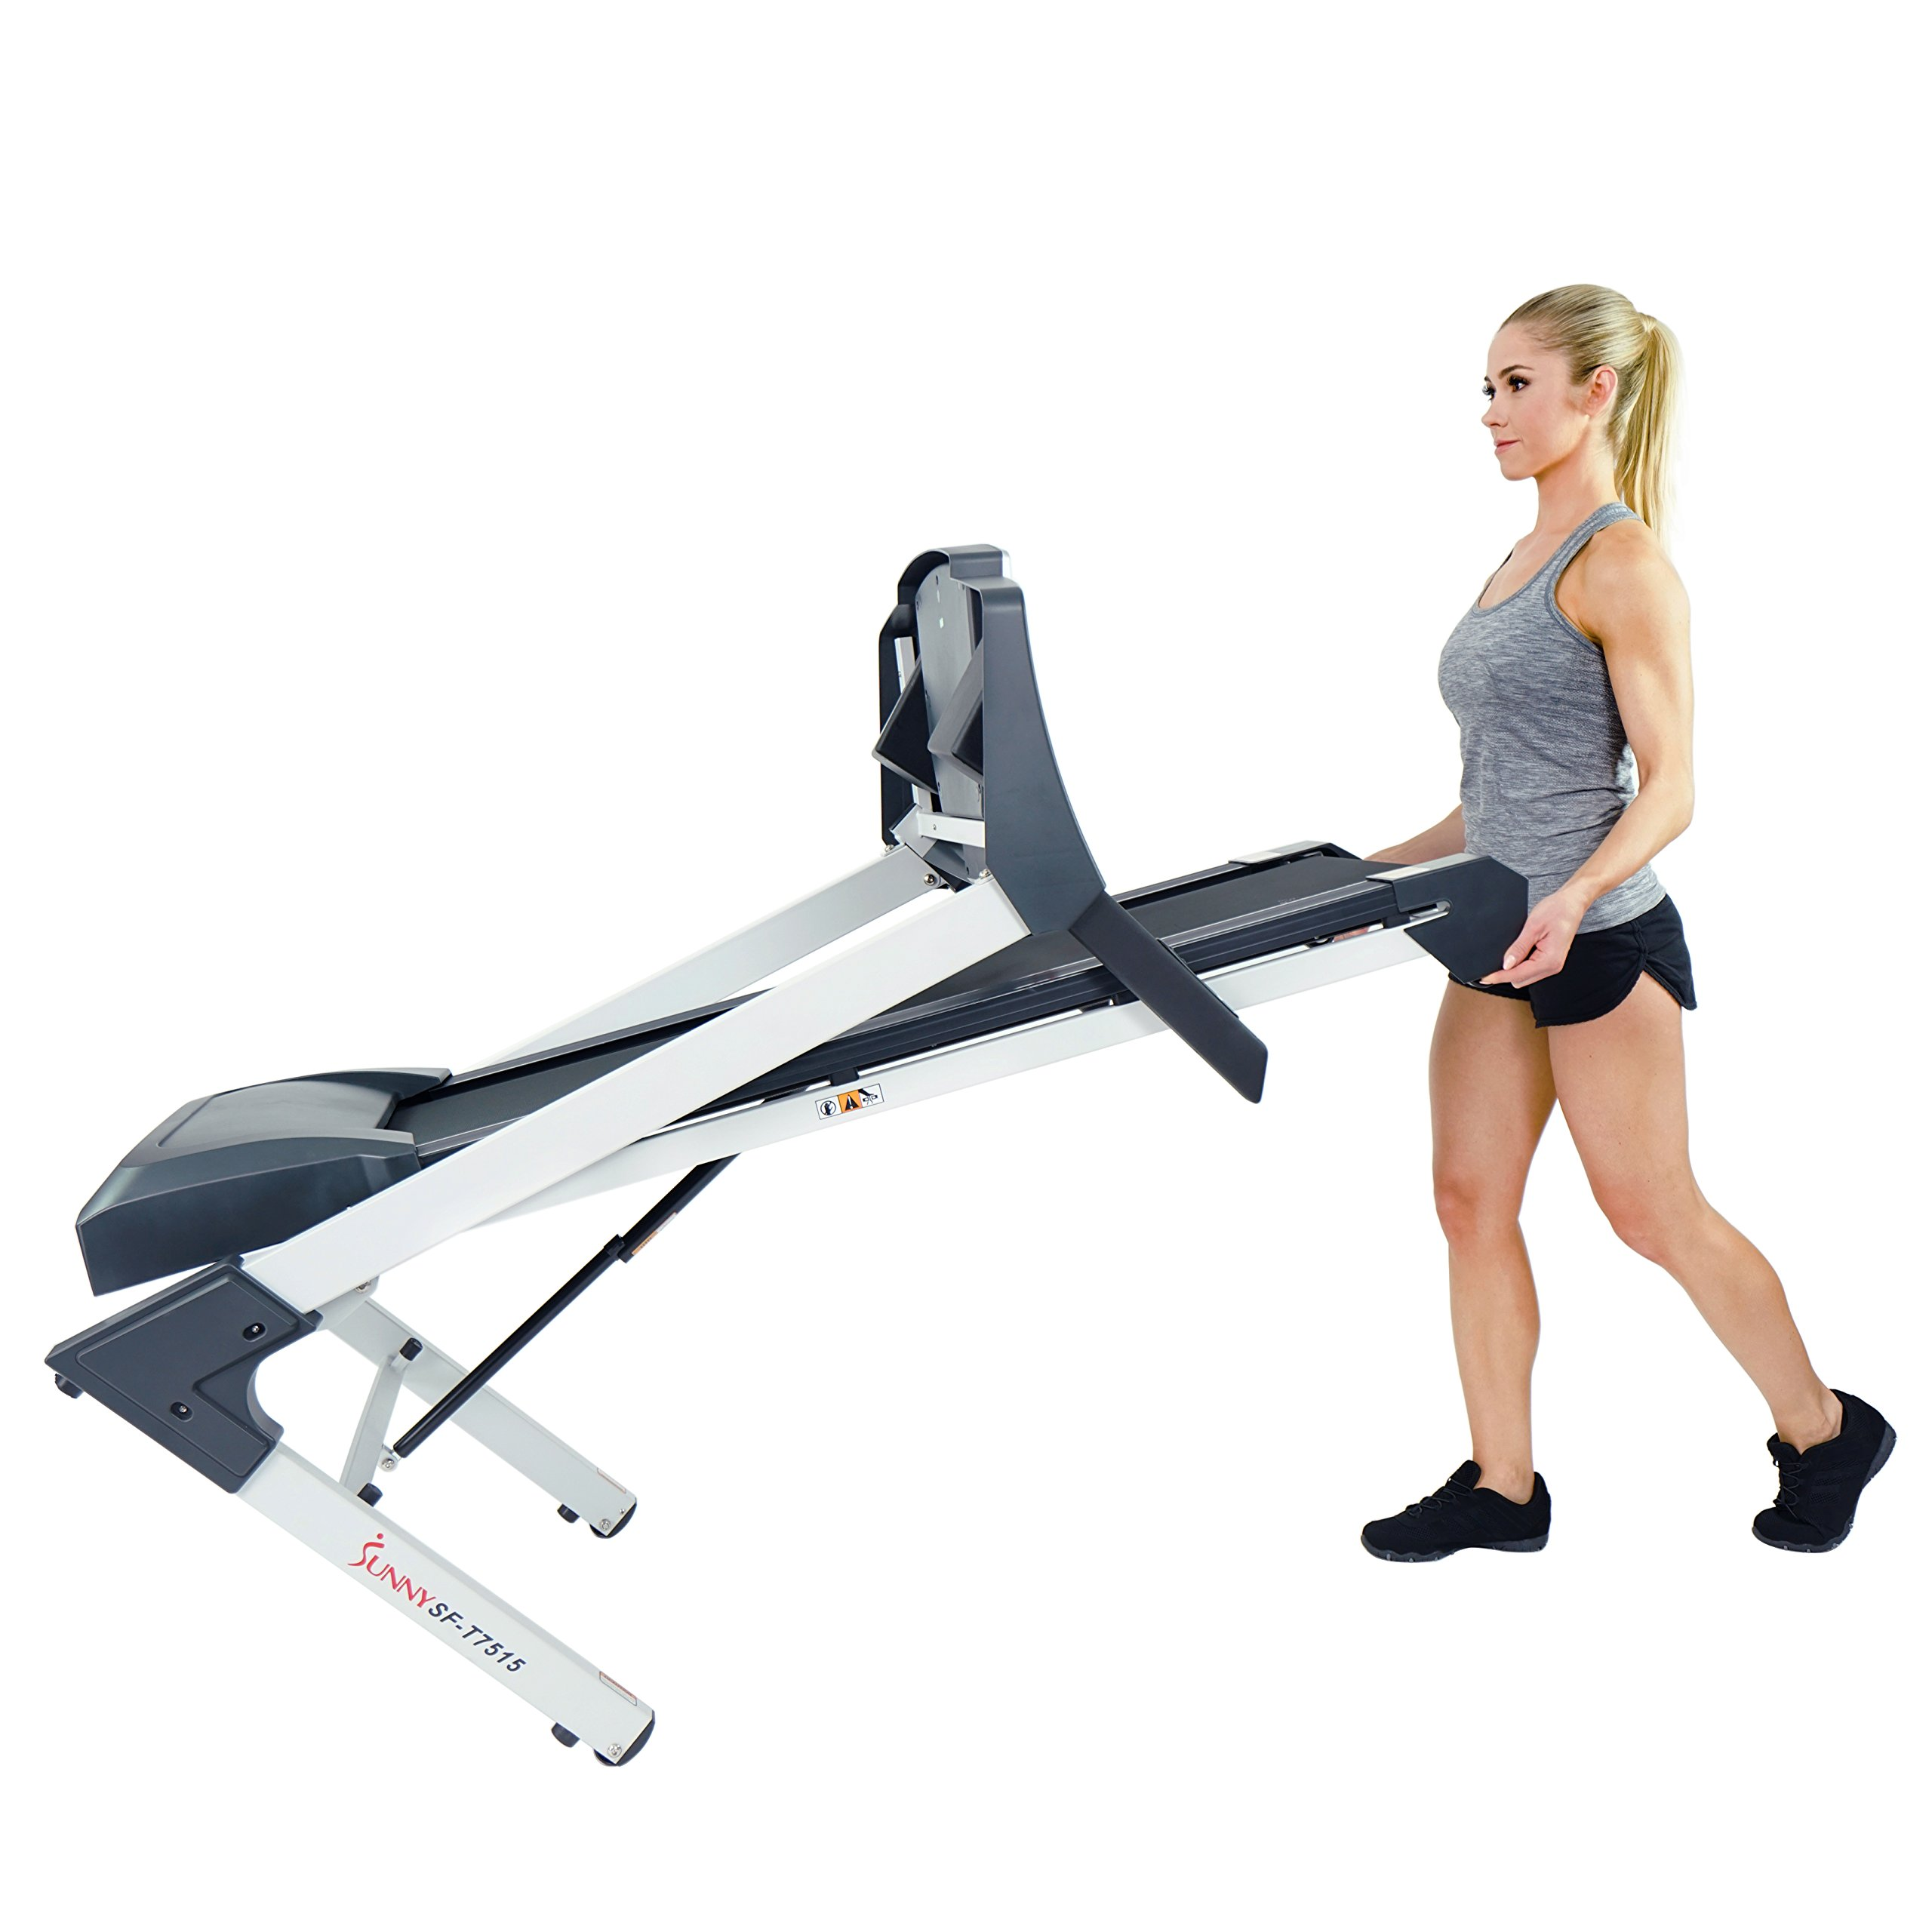 Sunny Health & Fitness SF-T7515 Smart Treadmill with Auto Incline, Bluetooth and BMI Calculator by Sunny Health & Fitness (Image #15)